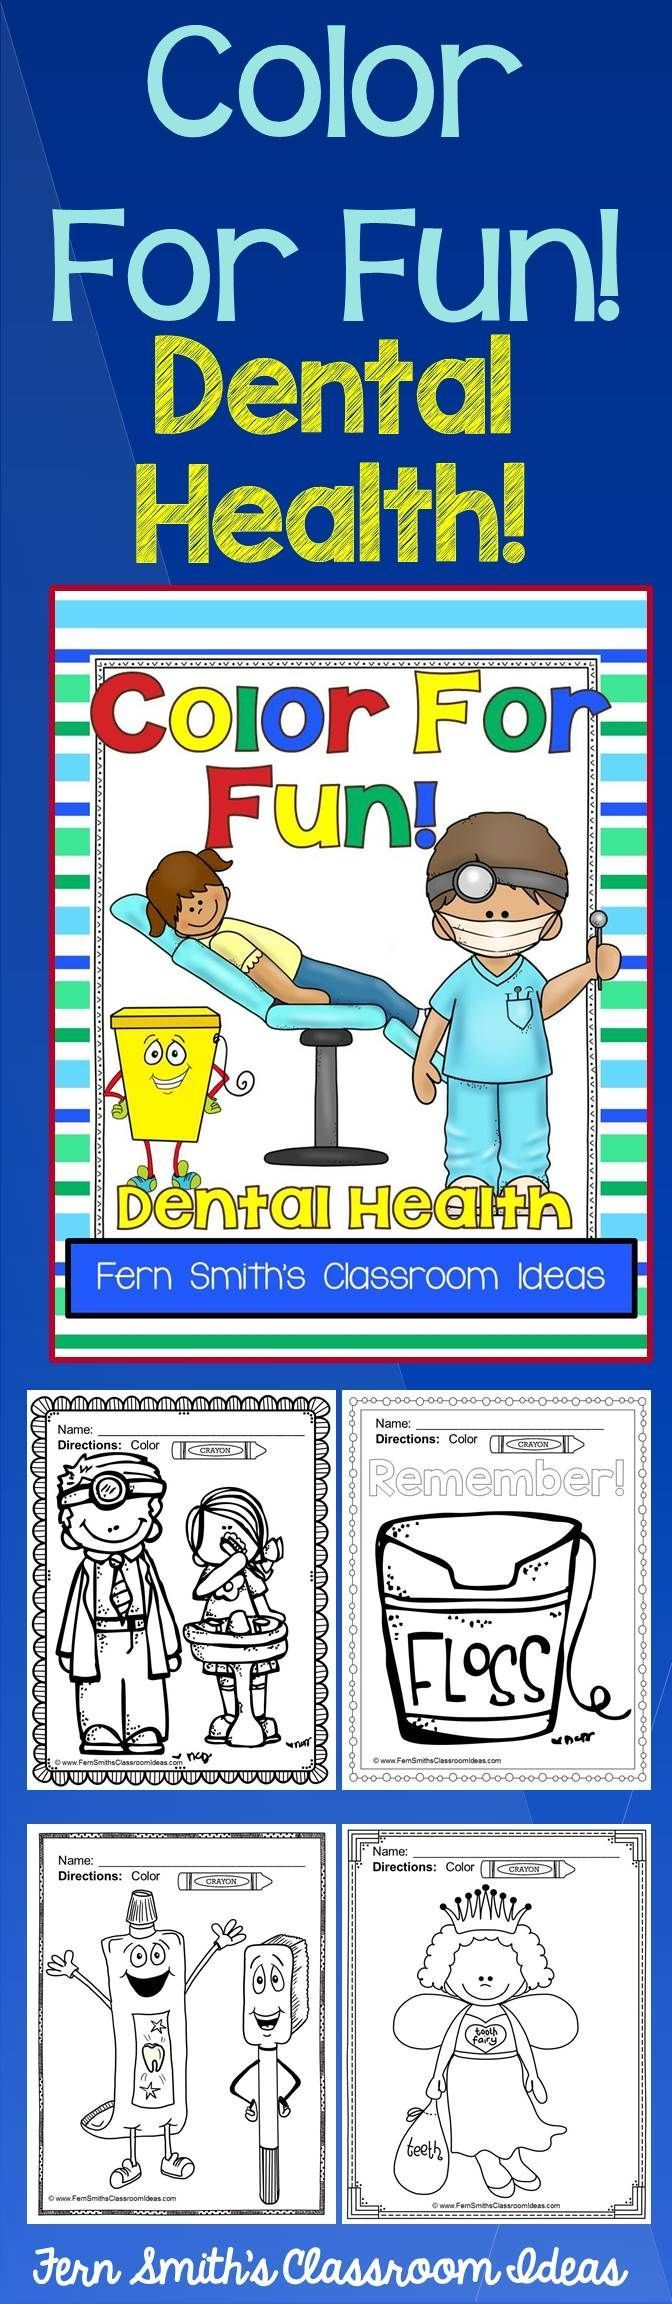 Childrens dental coloring pages - Dental Health Fun Coloring Pages